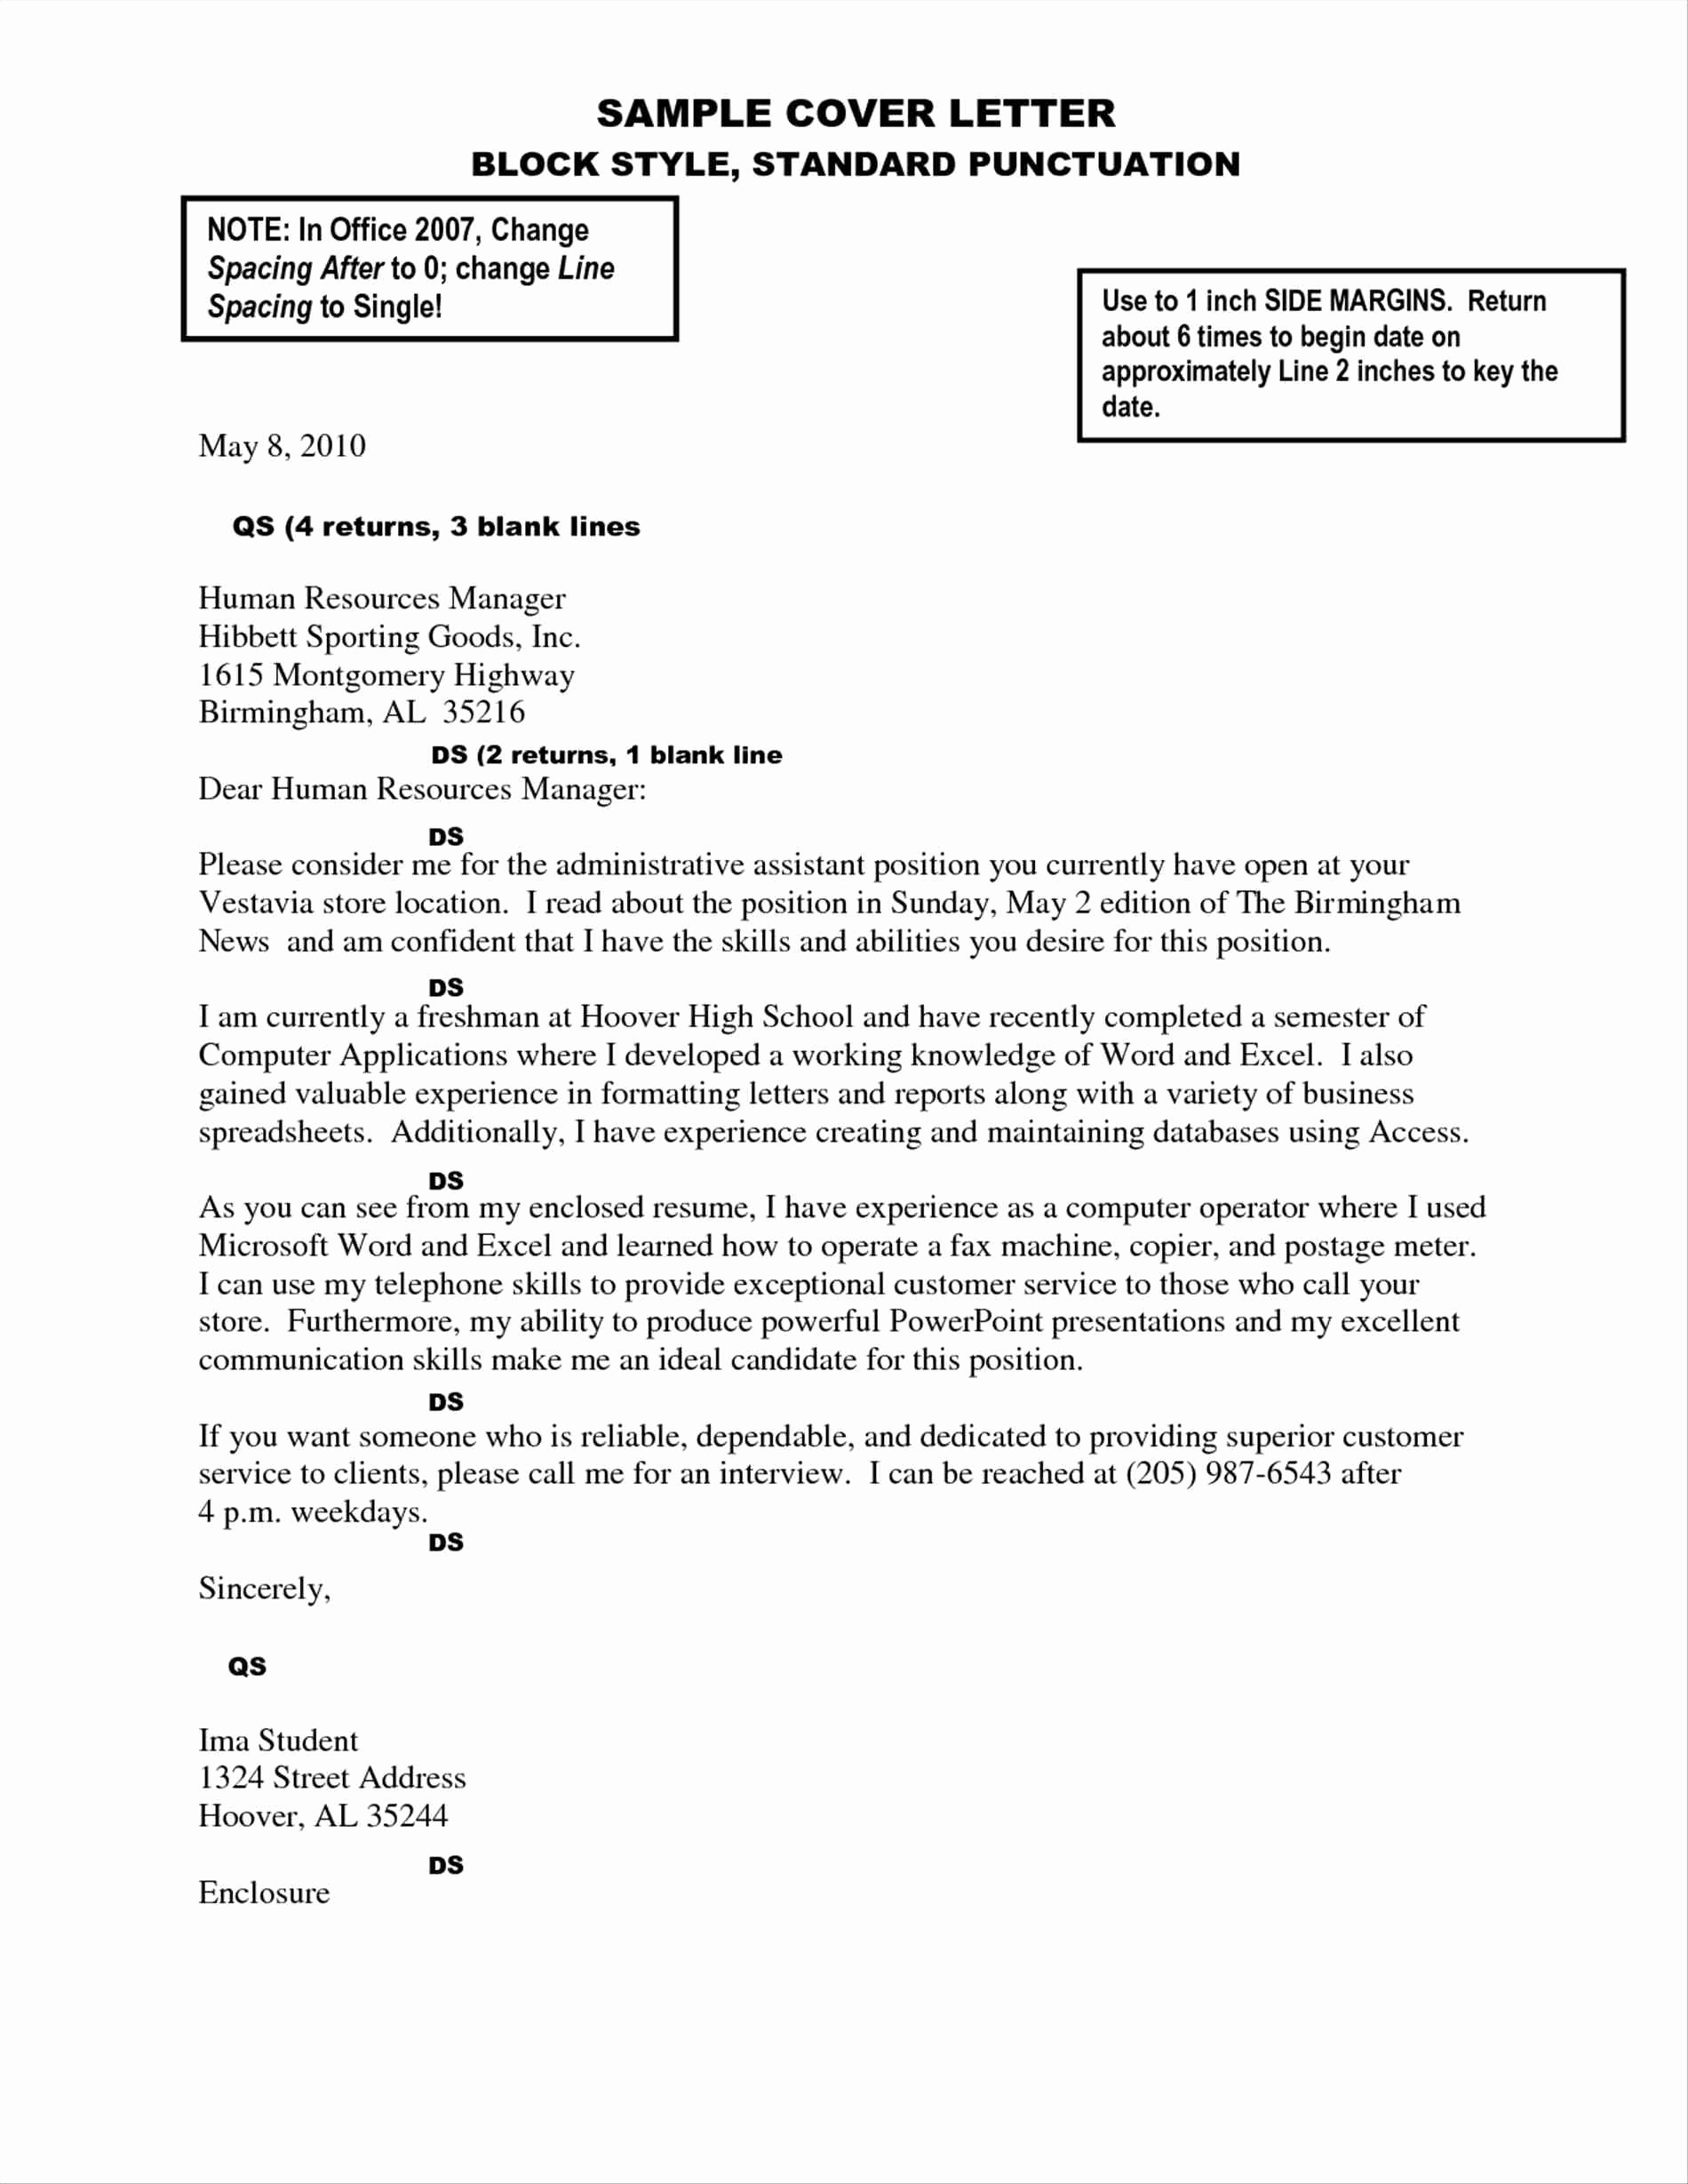 Free form Letter Template - Free Sample Cover Letter Template Free Cover Letter Templates for